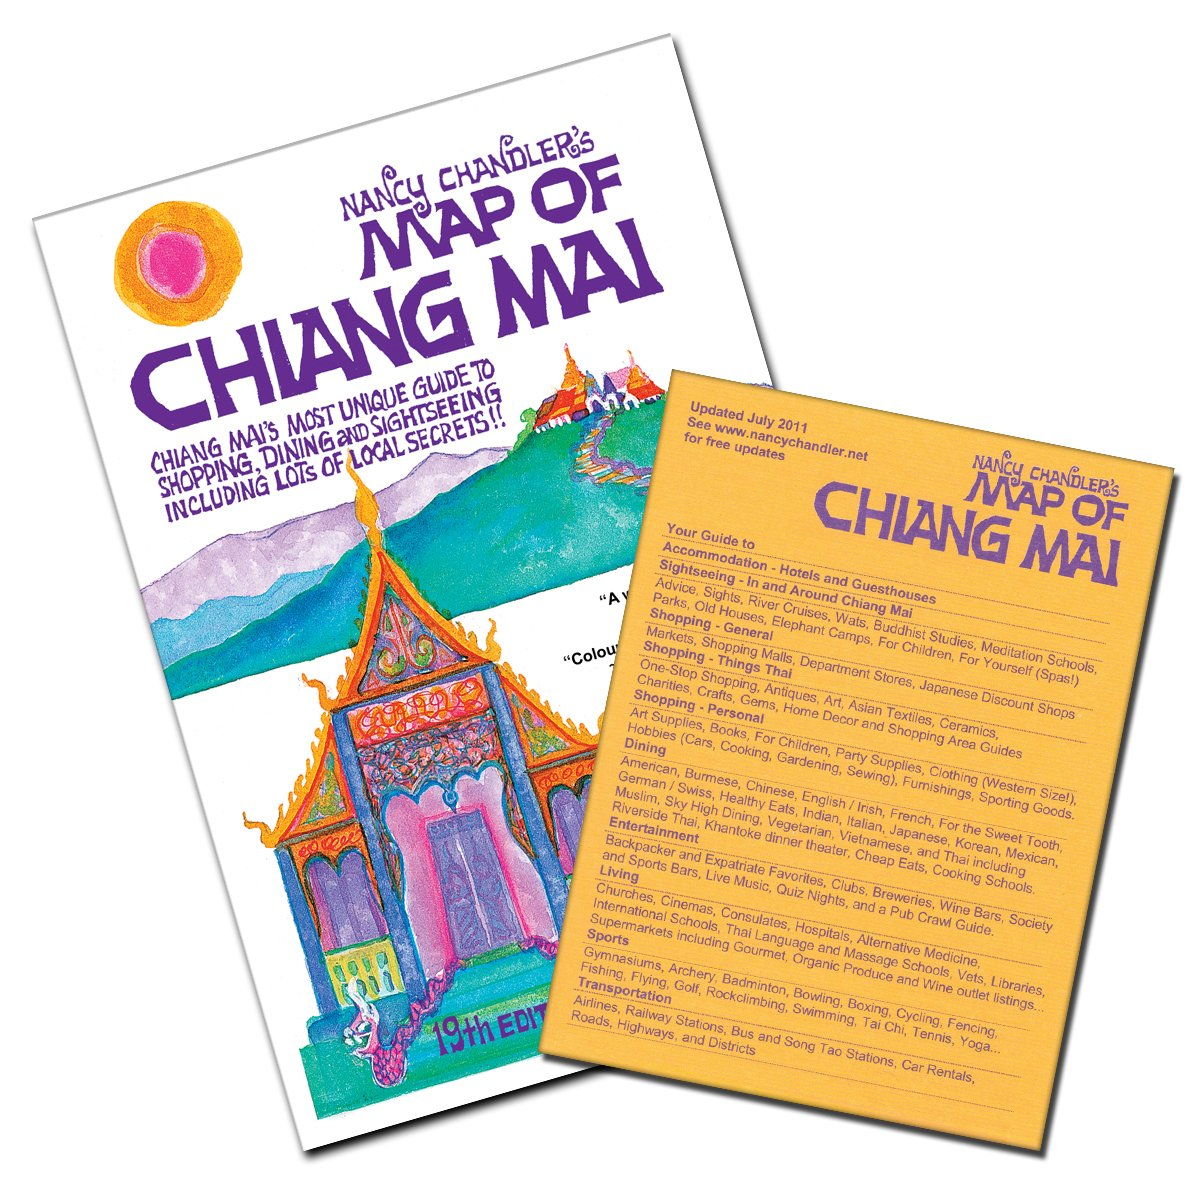 Nancy Chandler's Map of Chiang Mai: Amazon.de: Nancy Chandler ... on